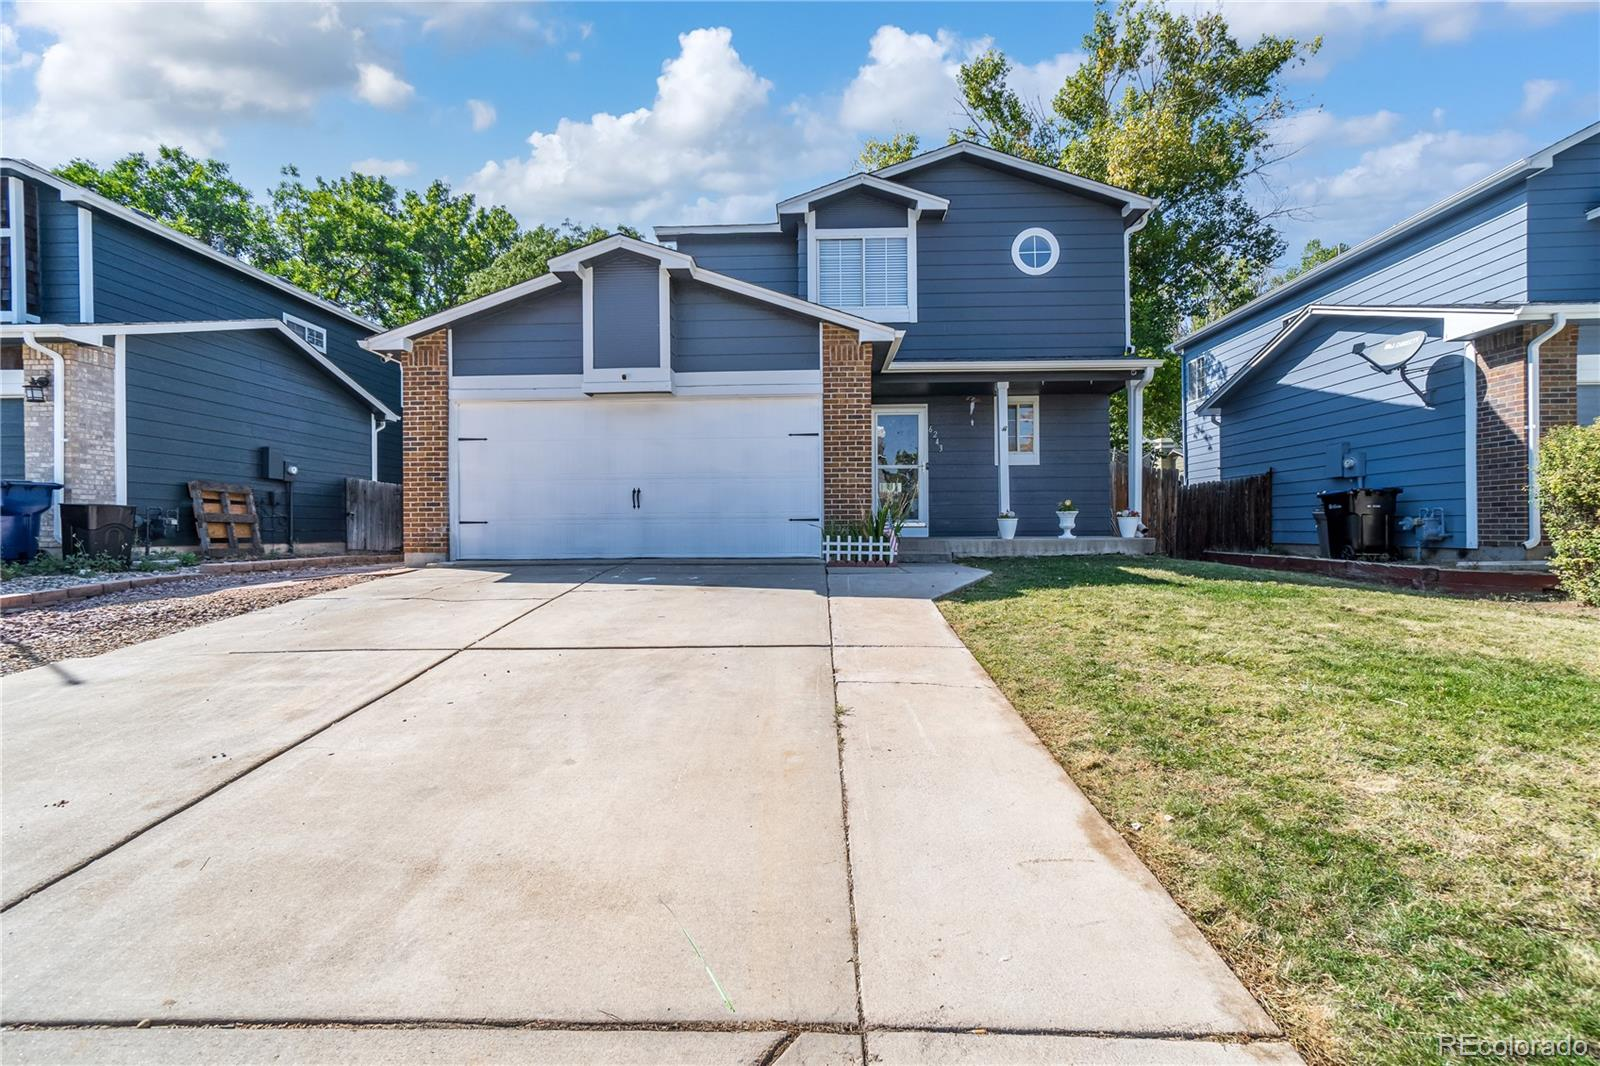 BEAUTIFUL HOME IN HEART OF ARVADA!! The minute you walk in you will fall in love with the bright and sunny open floor plan!!! Beautiful kitchen with granite countertops, stainless steel appliances, plenty of cabinet and counter space. Brand new laminate wood floors on the main level and upstairs bathrooms!! Upstairs features 3 bedrooms including a master suite with his and  her closets, double sinks and an oval tub perfect for those relaxation nights!! New custom tile!! Jack and Jill bathroom for the secondary bedrooms!! You'll love your finished basement with an additional bedroom and office or extra storage room!! Large backyard with covered trex deck!! New flooring, new oven, new lighting fixtures, new doors and handles, new interior paint and new garage door!! Roof is only 3 years old!! This wonderful home is steps away from the community park!! NO HOA!  Centrally located!! Close to schools, restaurants, Olde Town Arvada and all the other cool spots Arvada has to offer!!! Don't miss out on owning this AMAZING HOME!!!